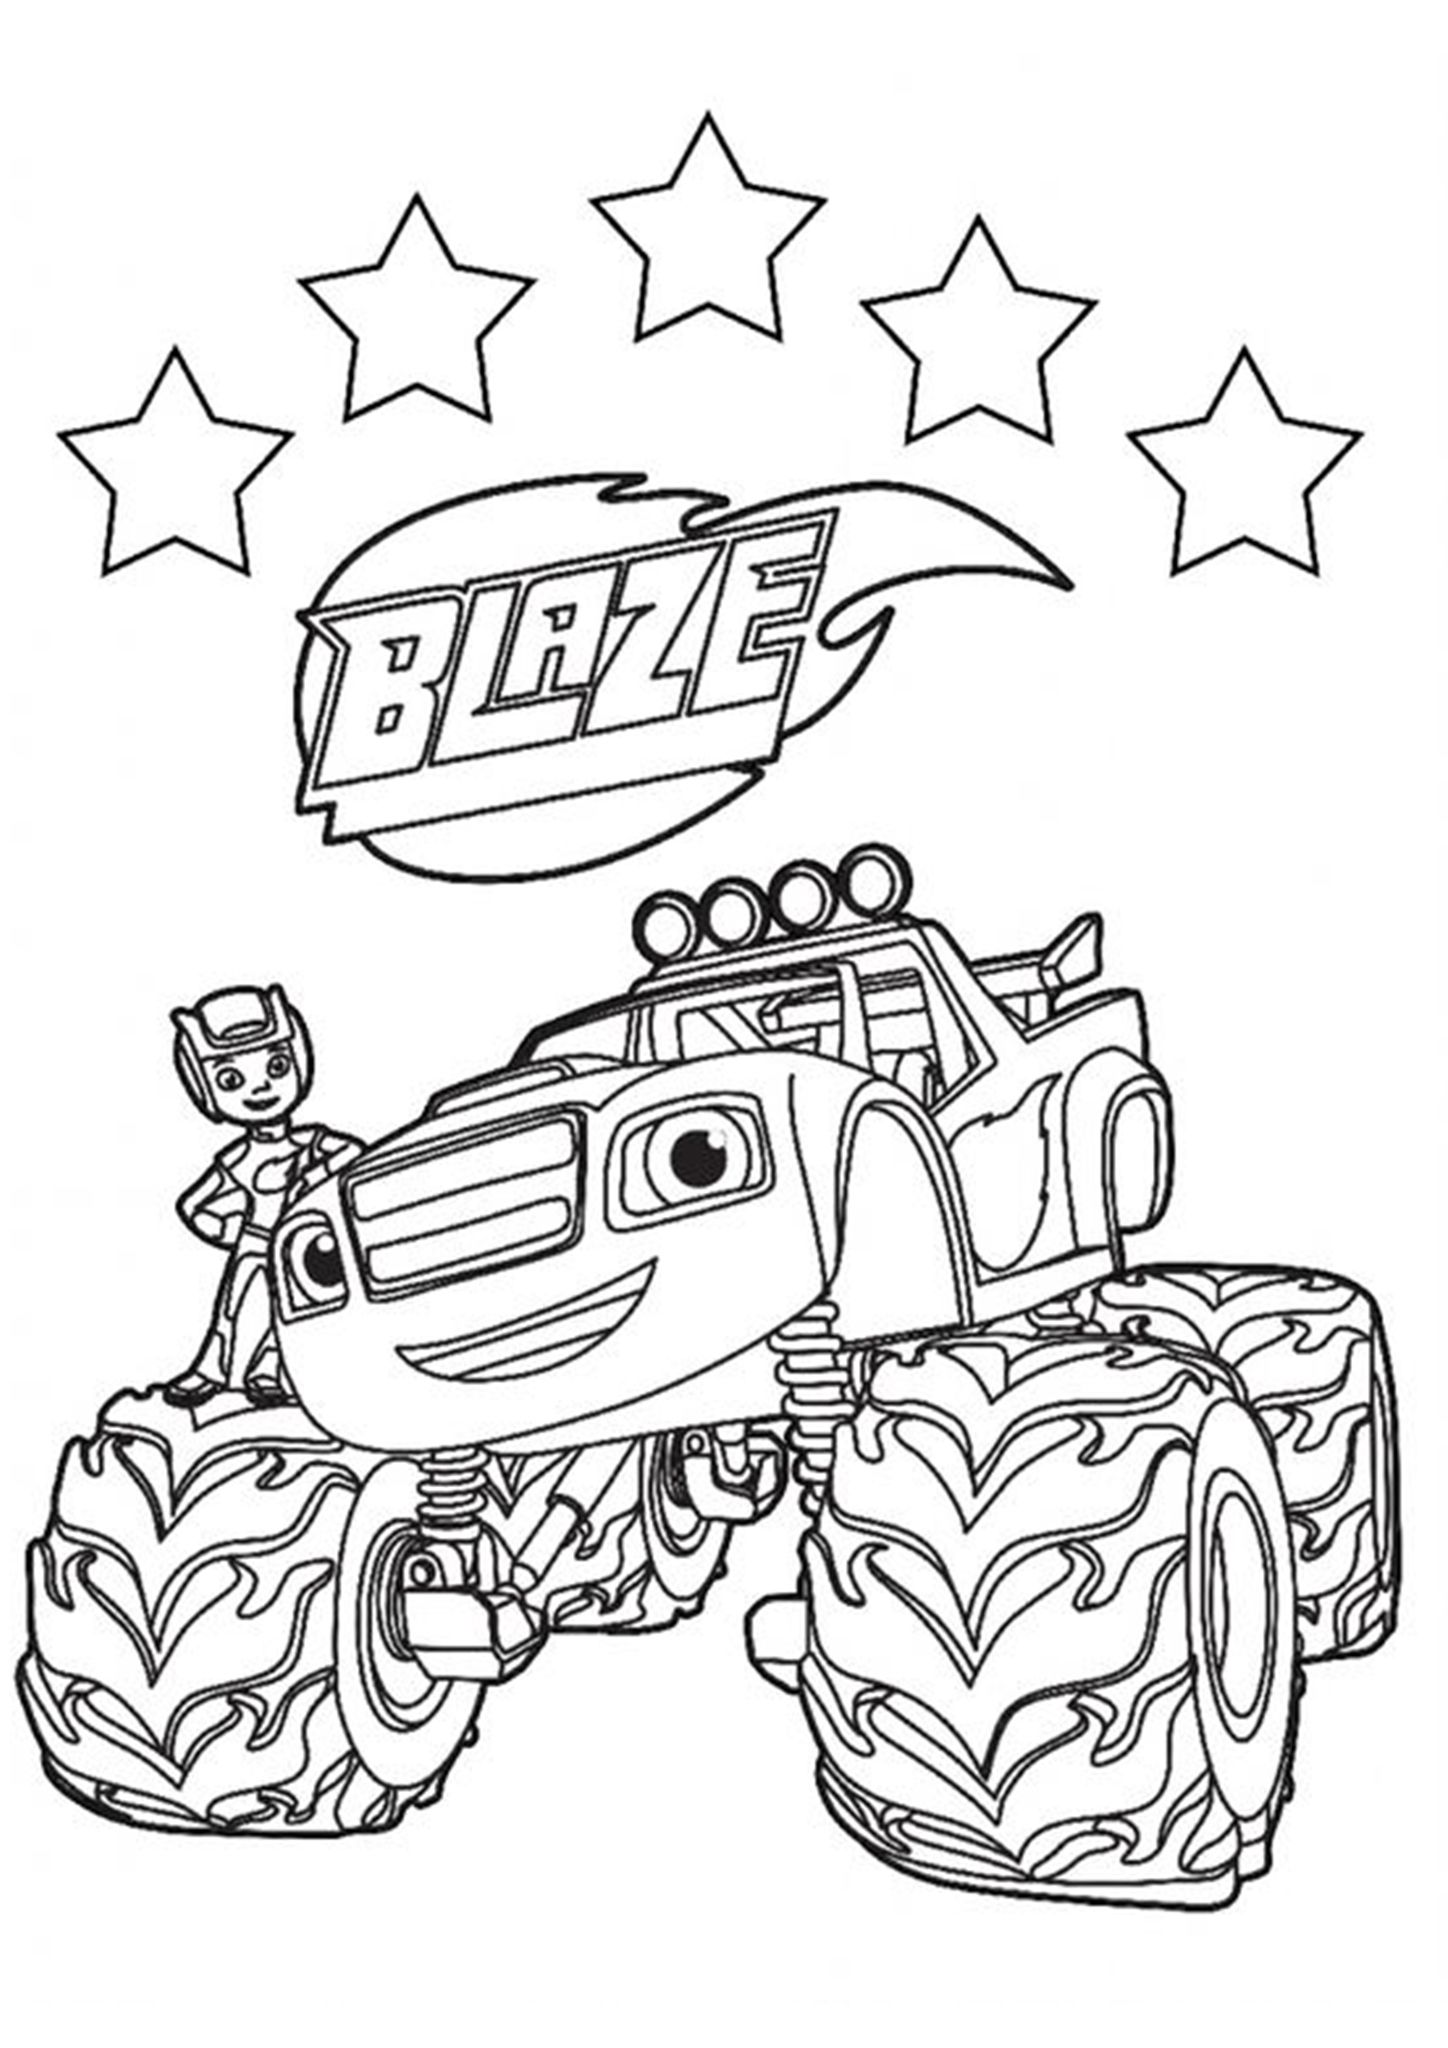 Free Easy To Print Monster Truck Coloring Pages In 2020 Monster Truck Coloring Pages Truck Coloring Pages Cartoon Coloring Pages